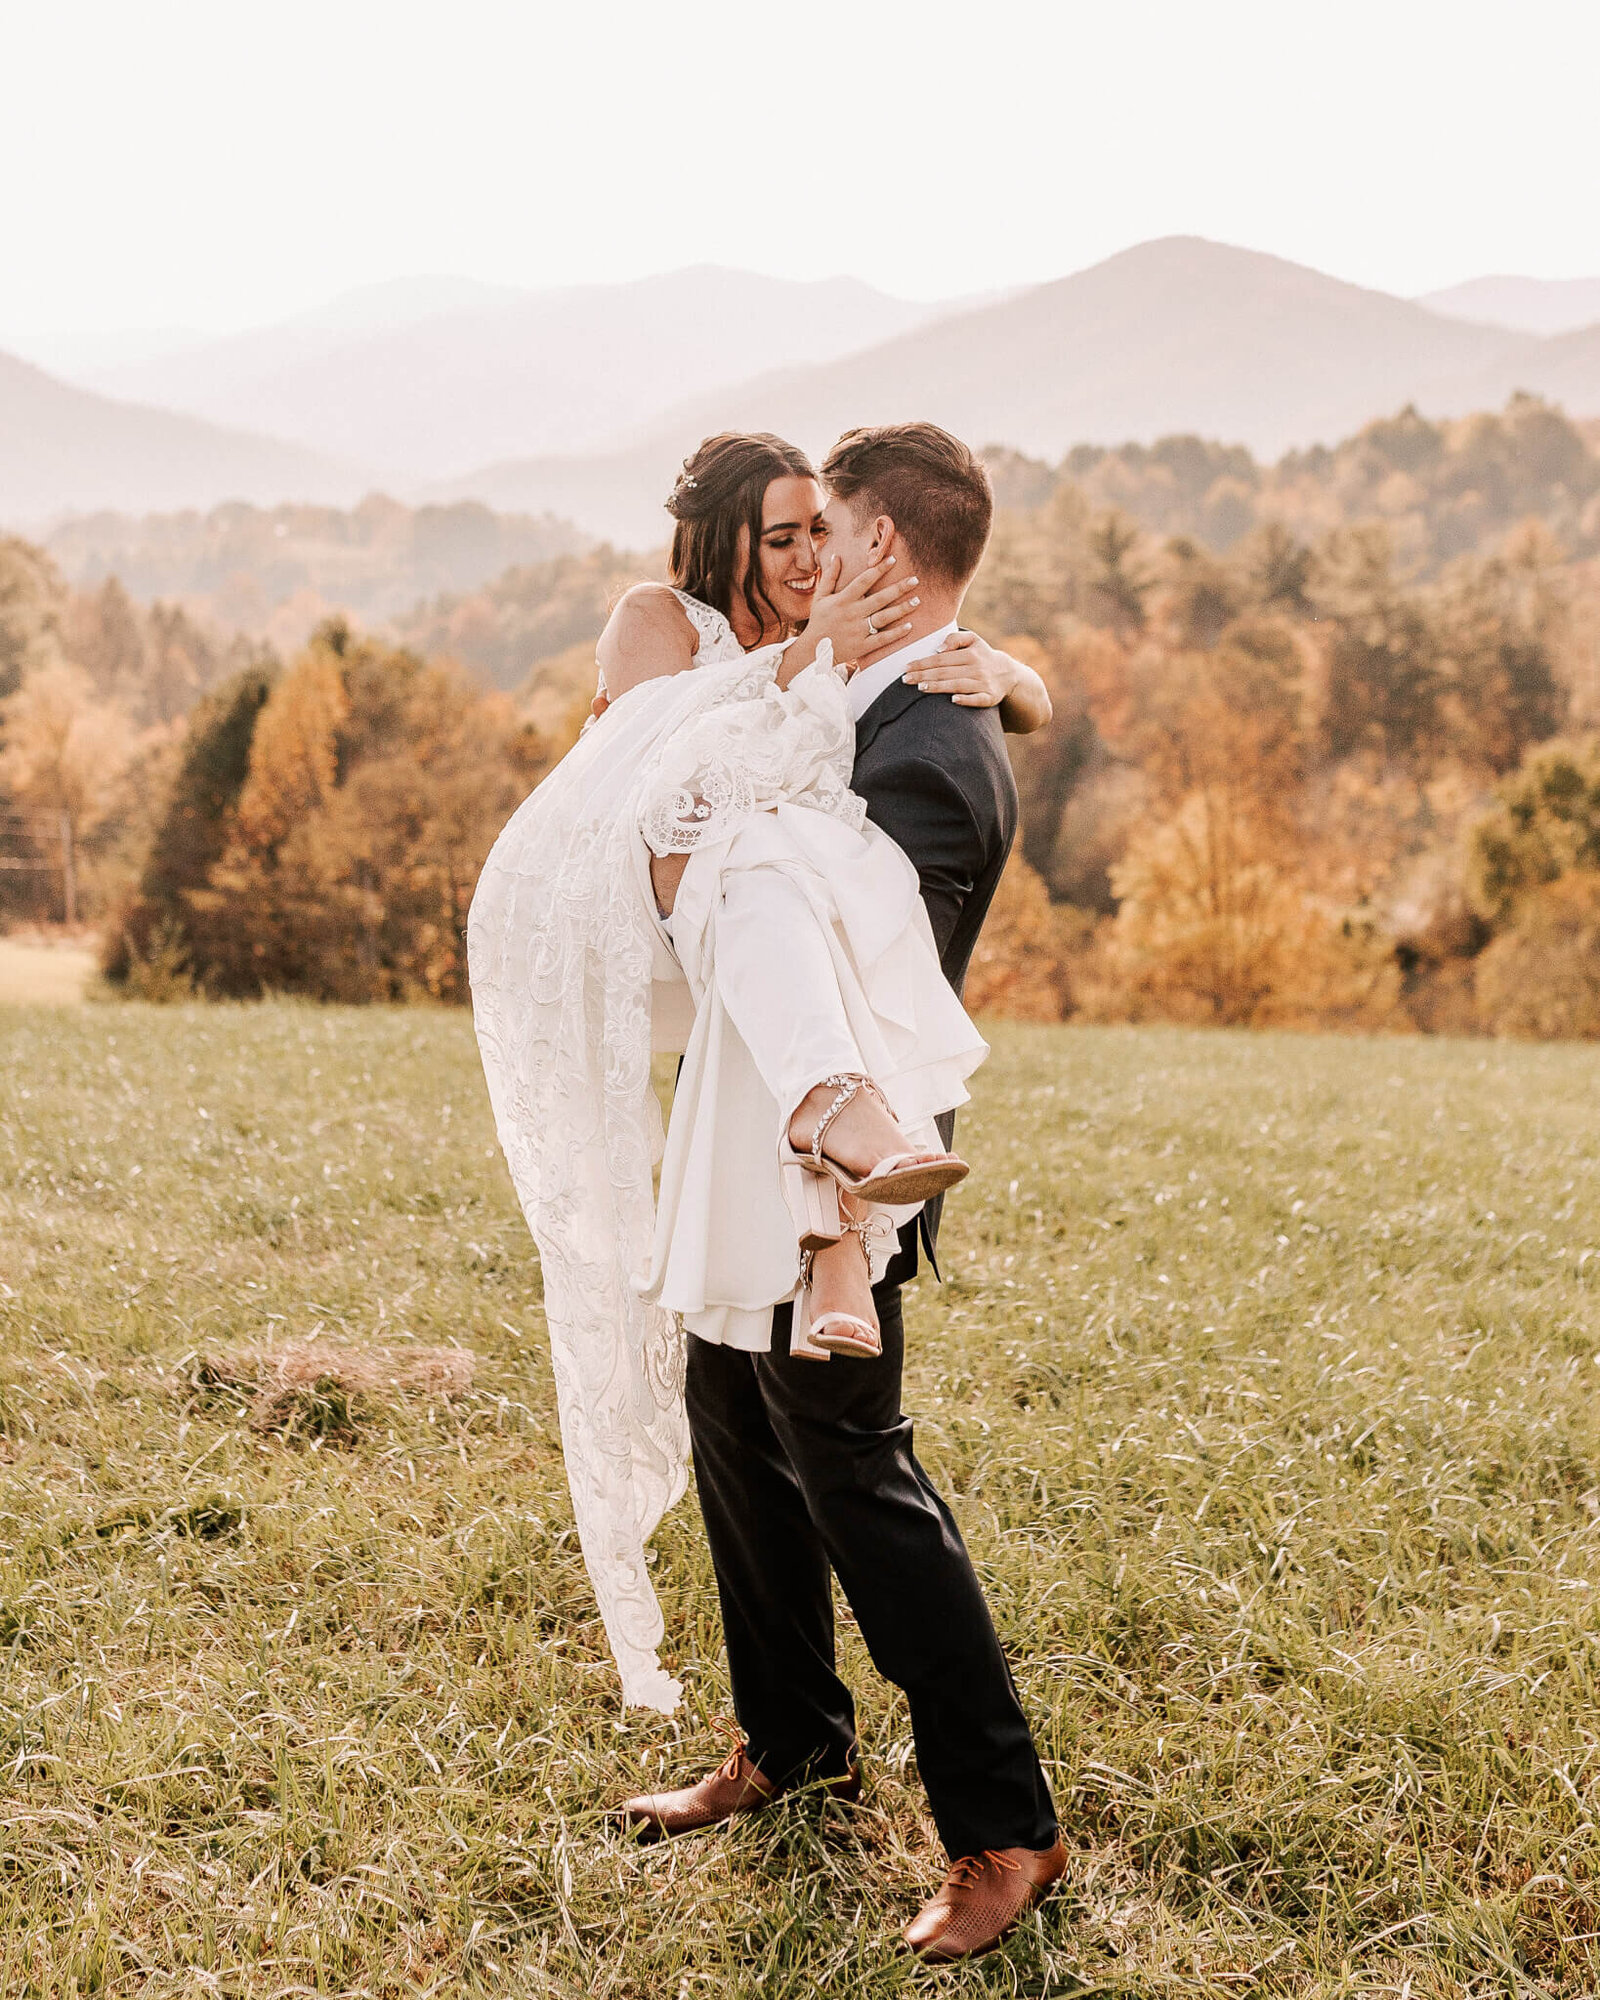 the-ridge-asheville-wedding-photographer-anorda-photography-02